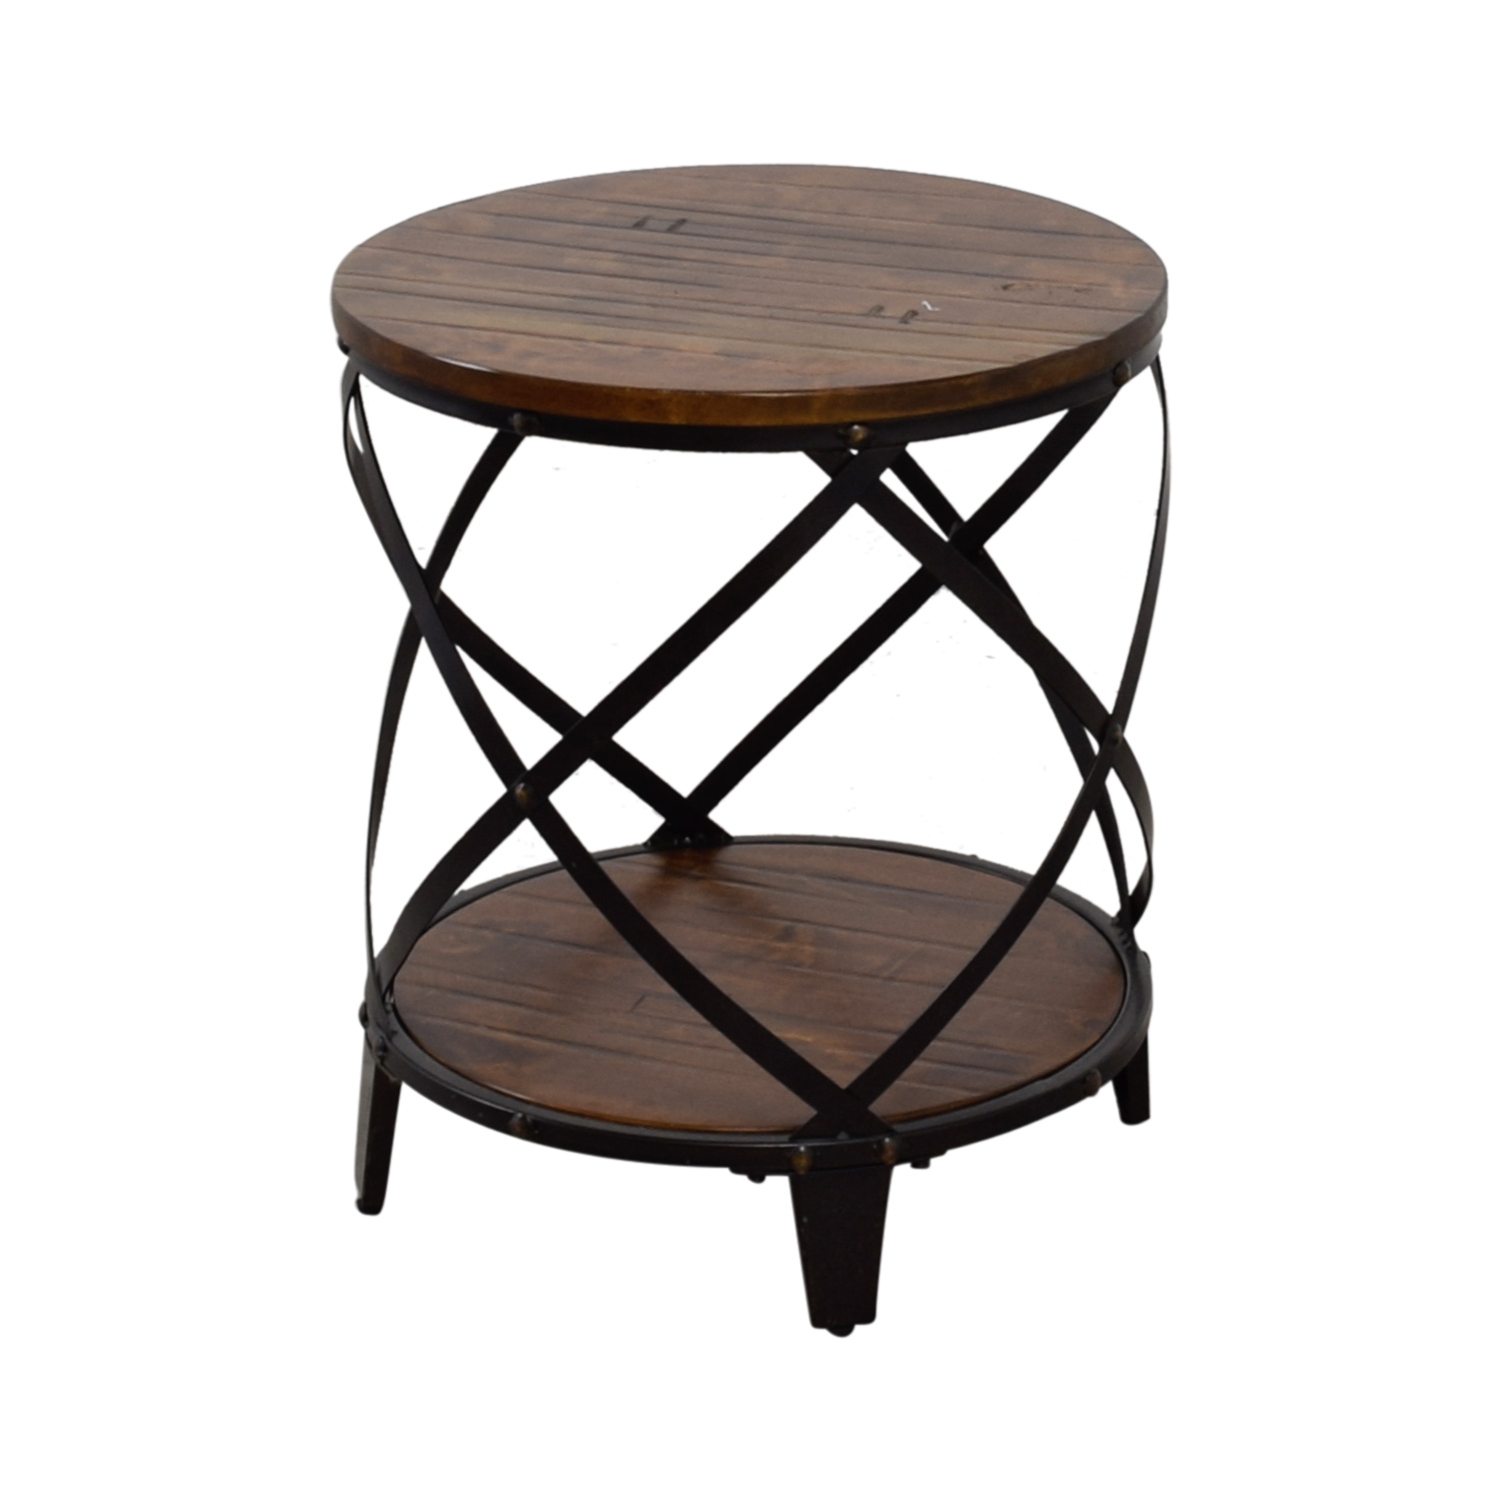 Steve Silver Steve Silver Round Wood and Metal End Table Tables